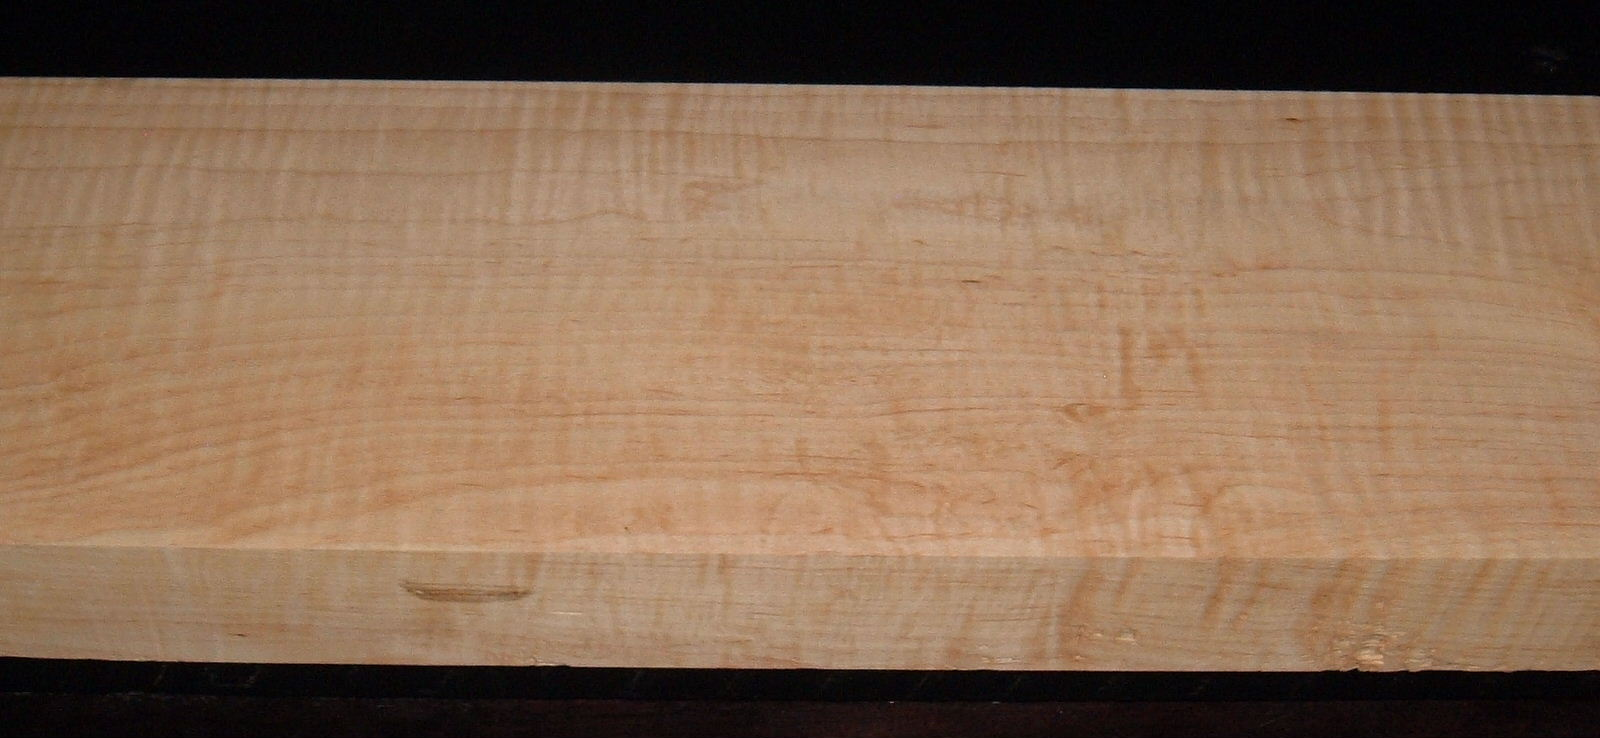 M2003-236, 1-13/16x7-1/4x42, Figure Curly Tiger Maple